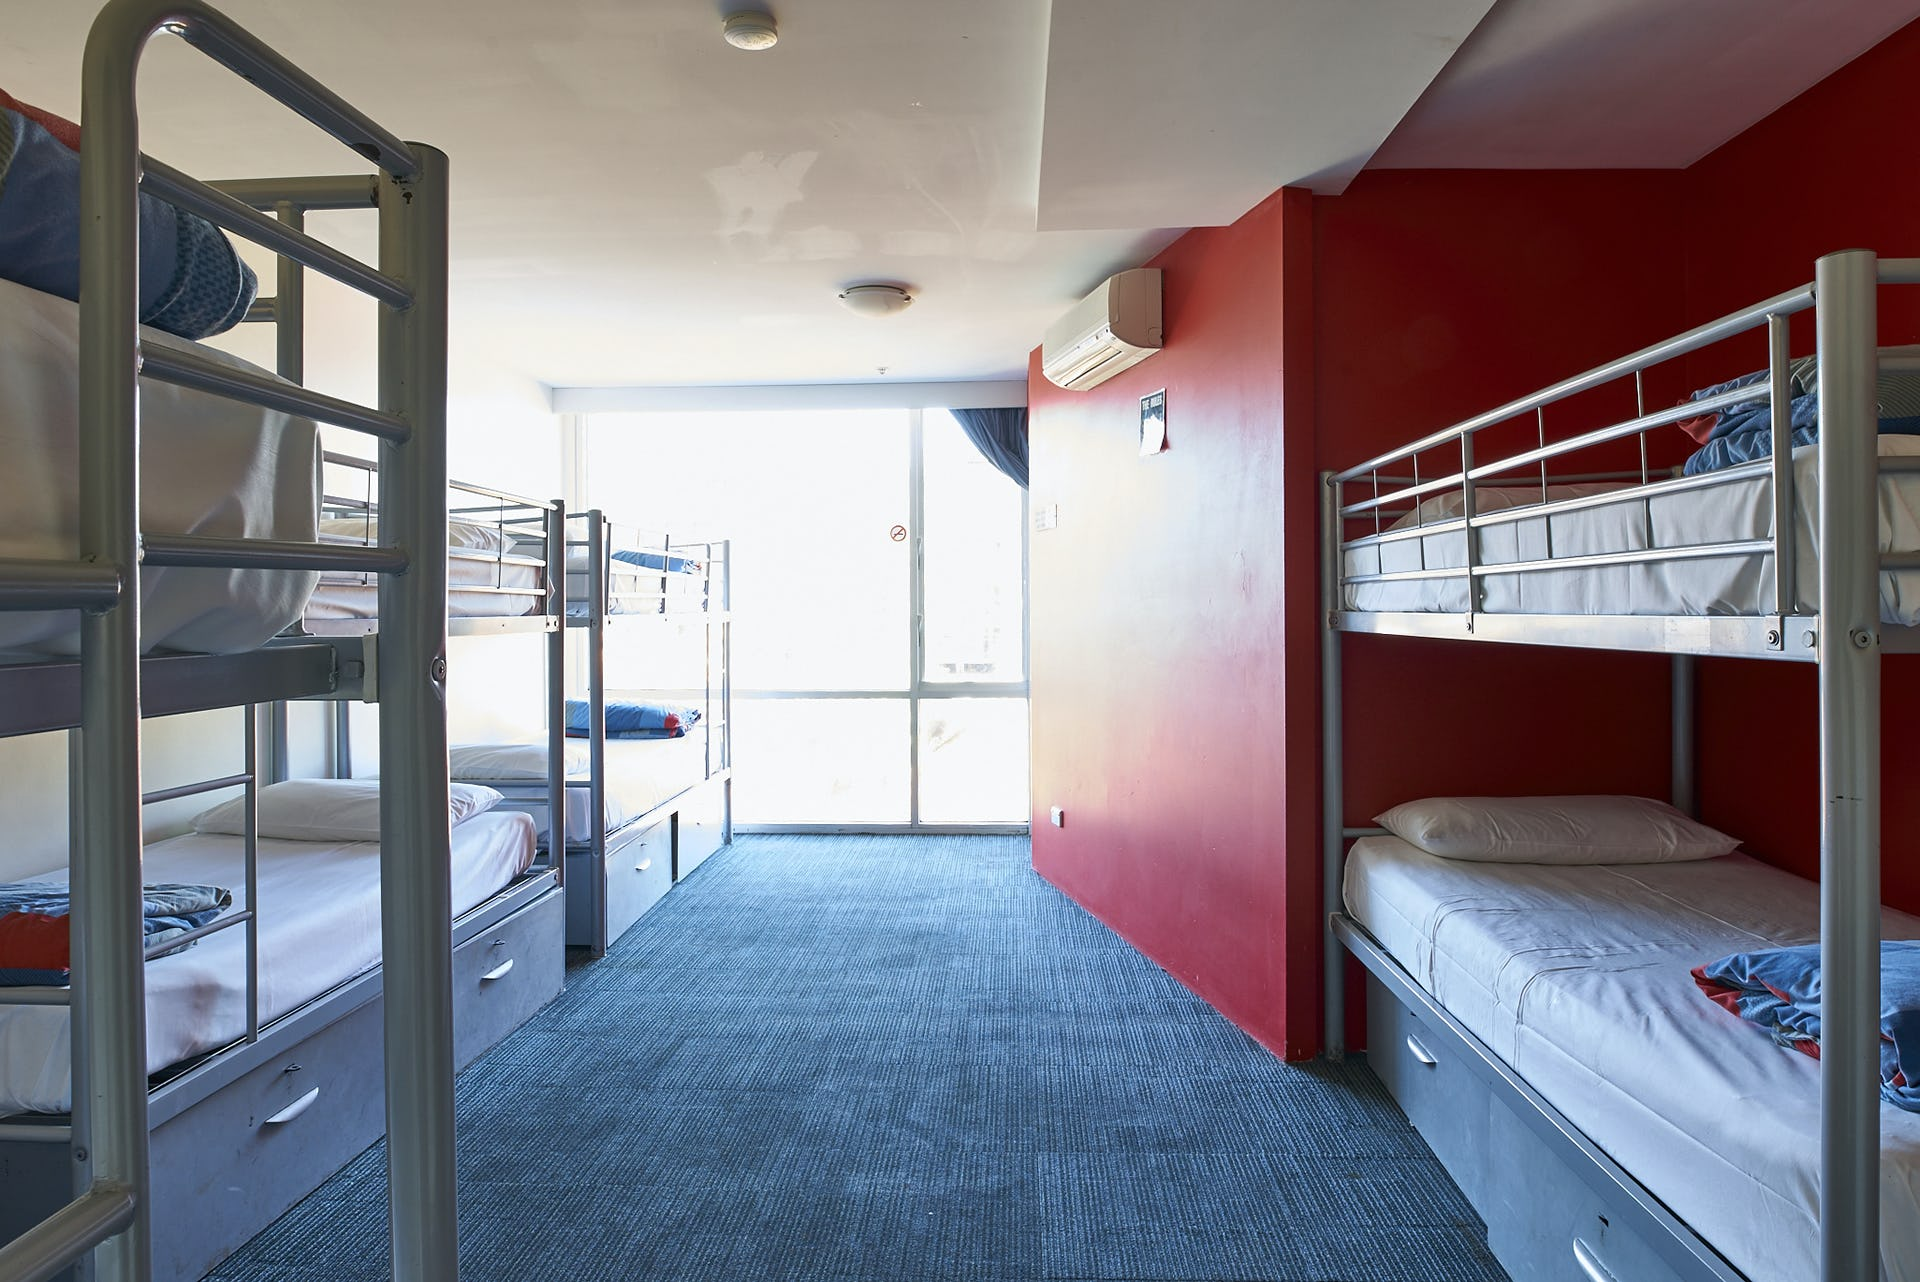 10 bed ensuite dorm at base st kilda hostel